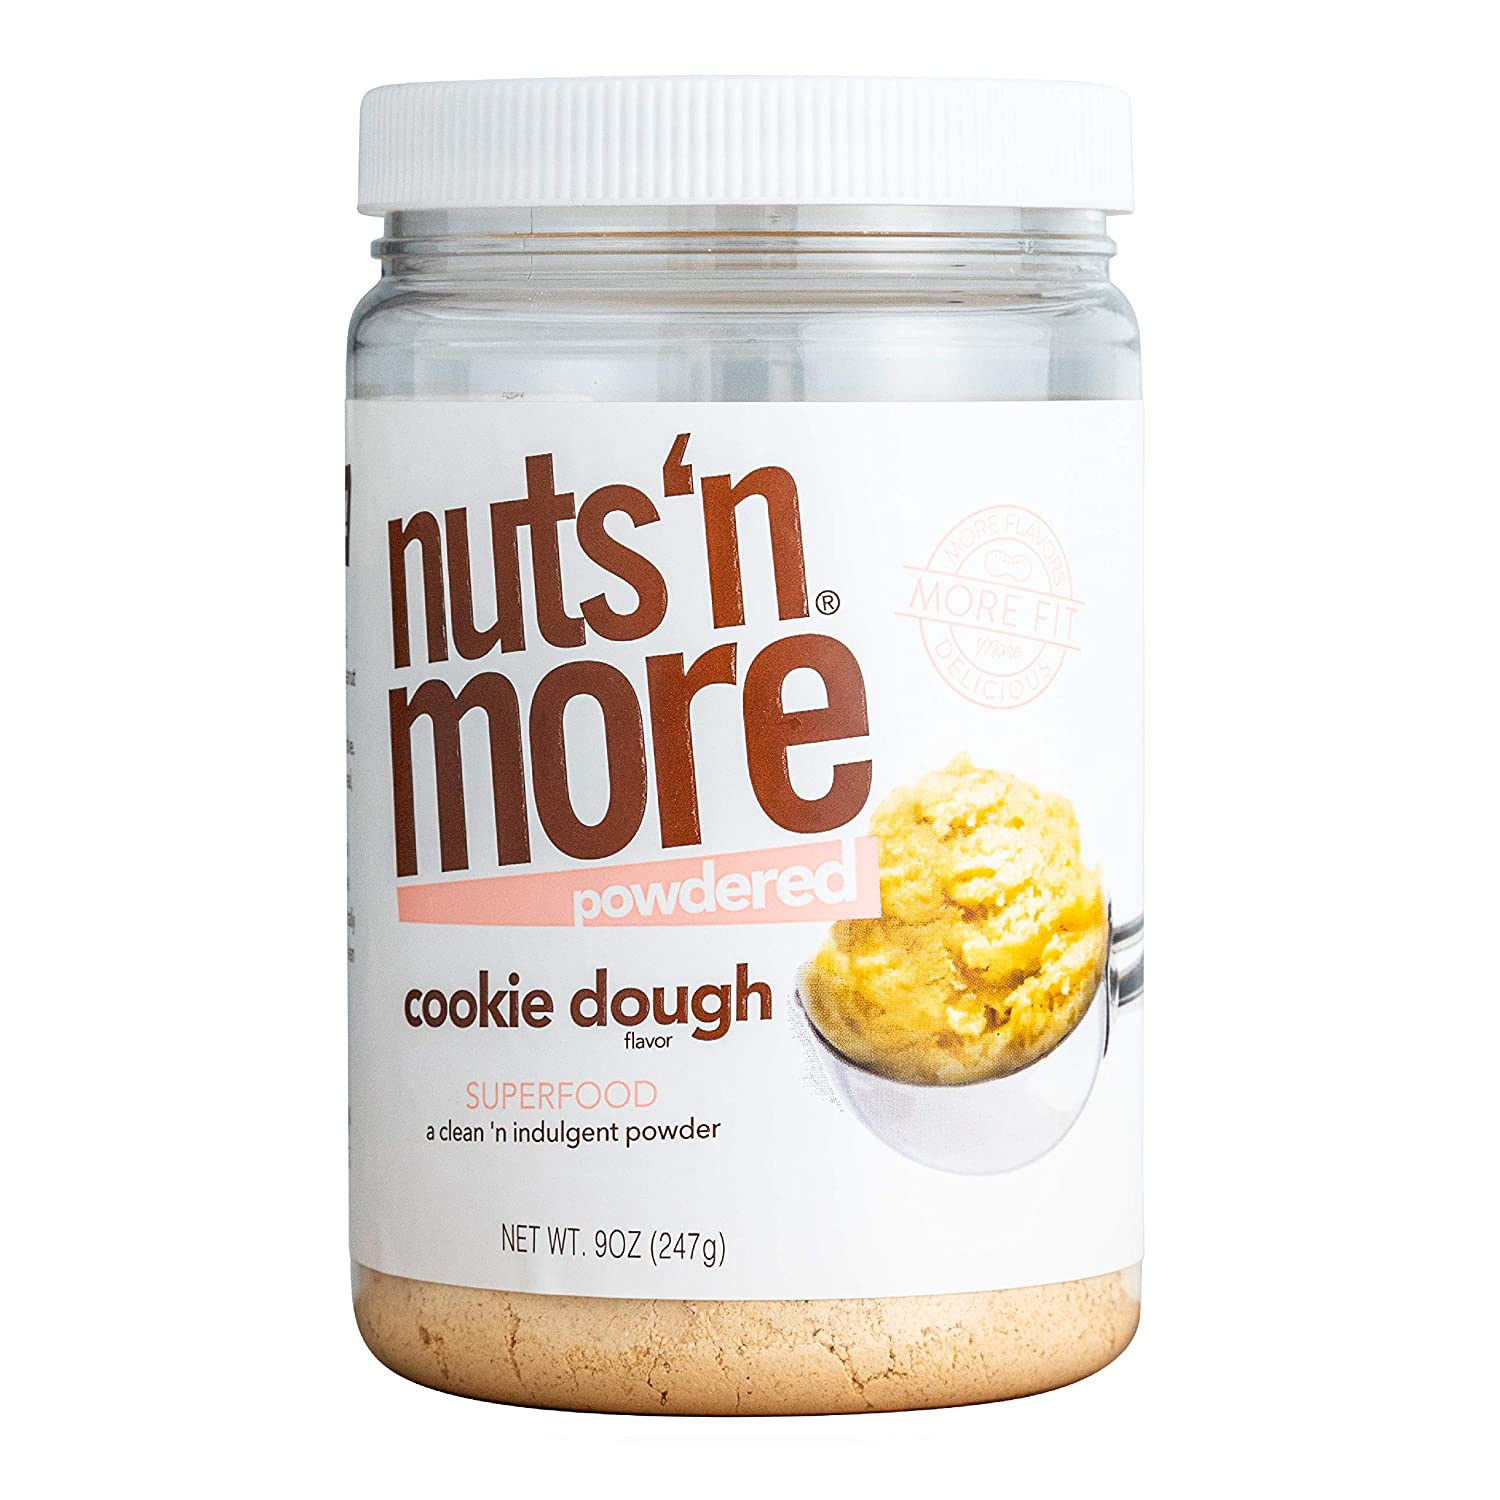 Nuts 'N More Cookie Dough Peanut Butter Powder, All Natural Keto Snack, Low Carb, Low Sugar, Gluten Free, Non-GMO, High Protein Flavored Nut Butter (9 oz Jar)